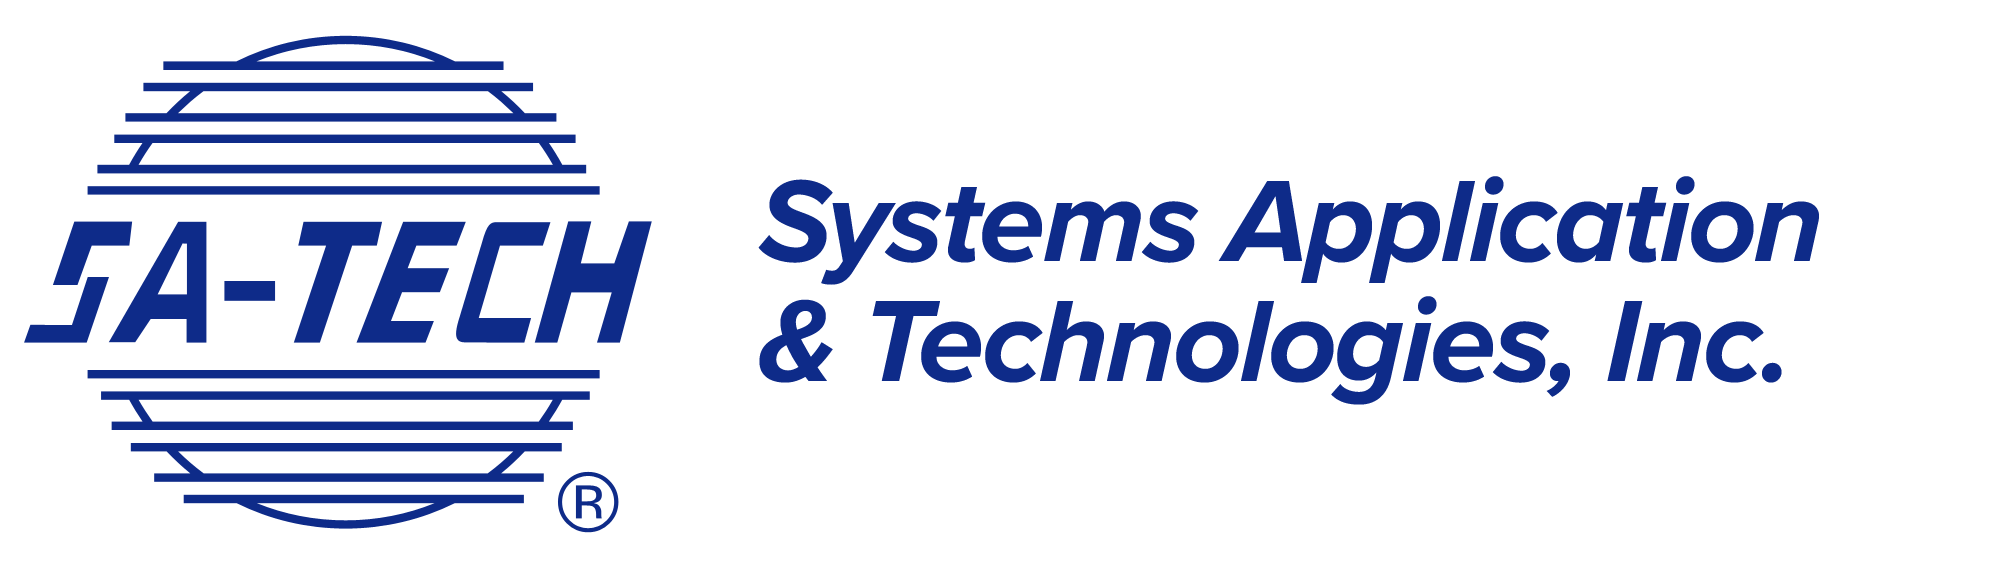 Systems Application & Technologies, Inc.